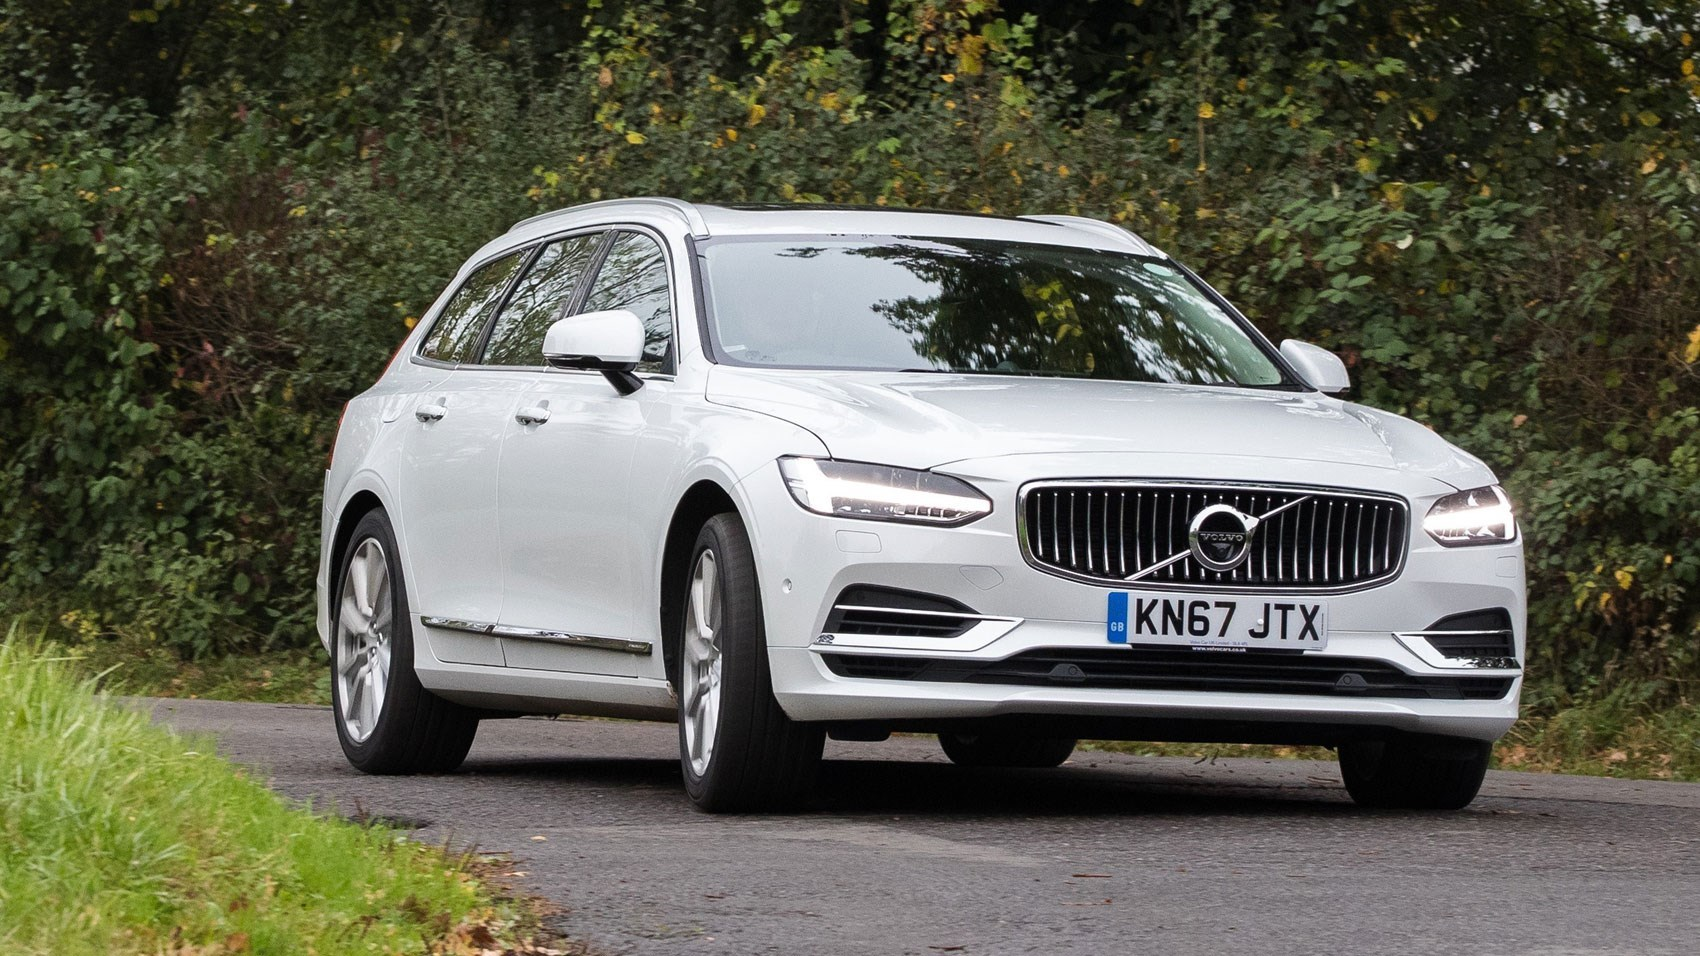 Volvo is limiting all of its cars' top speeds to 180 km/h